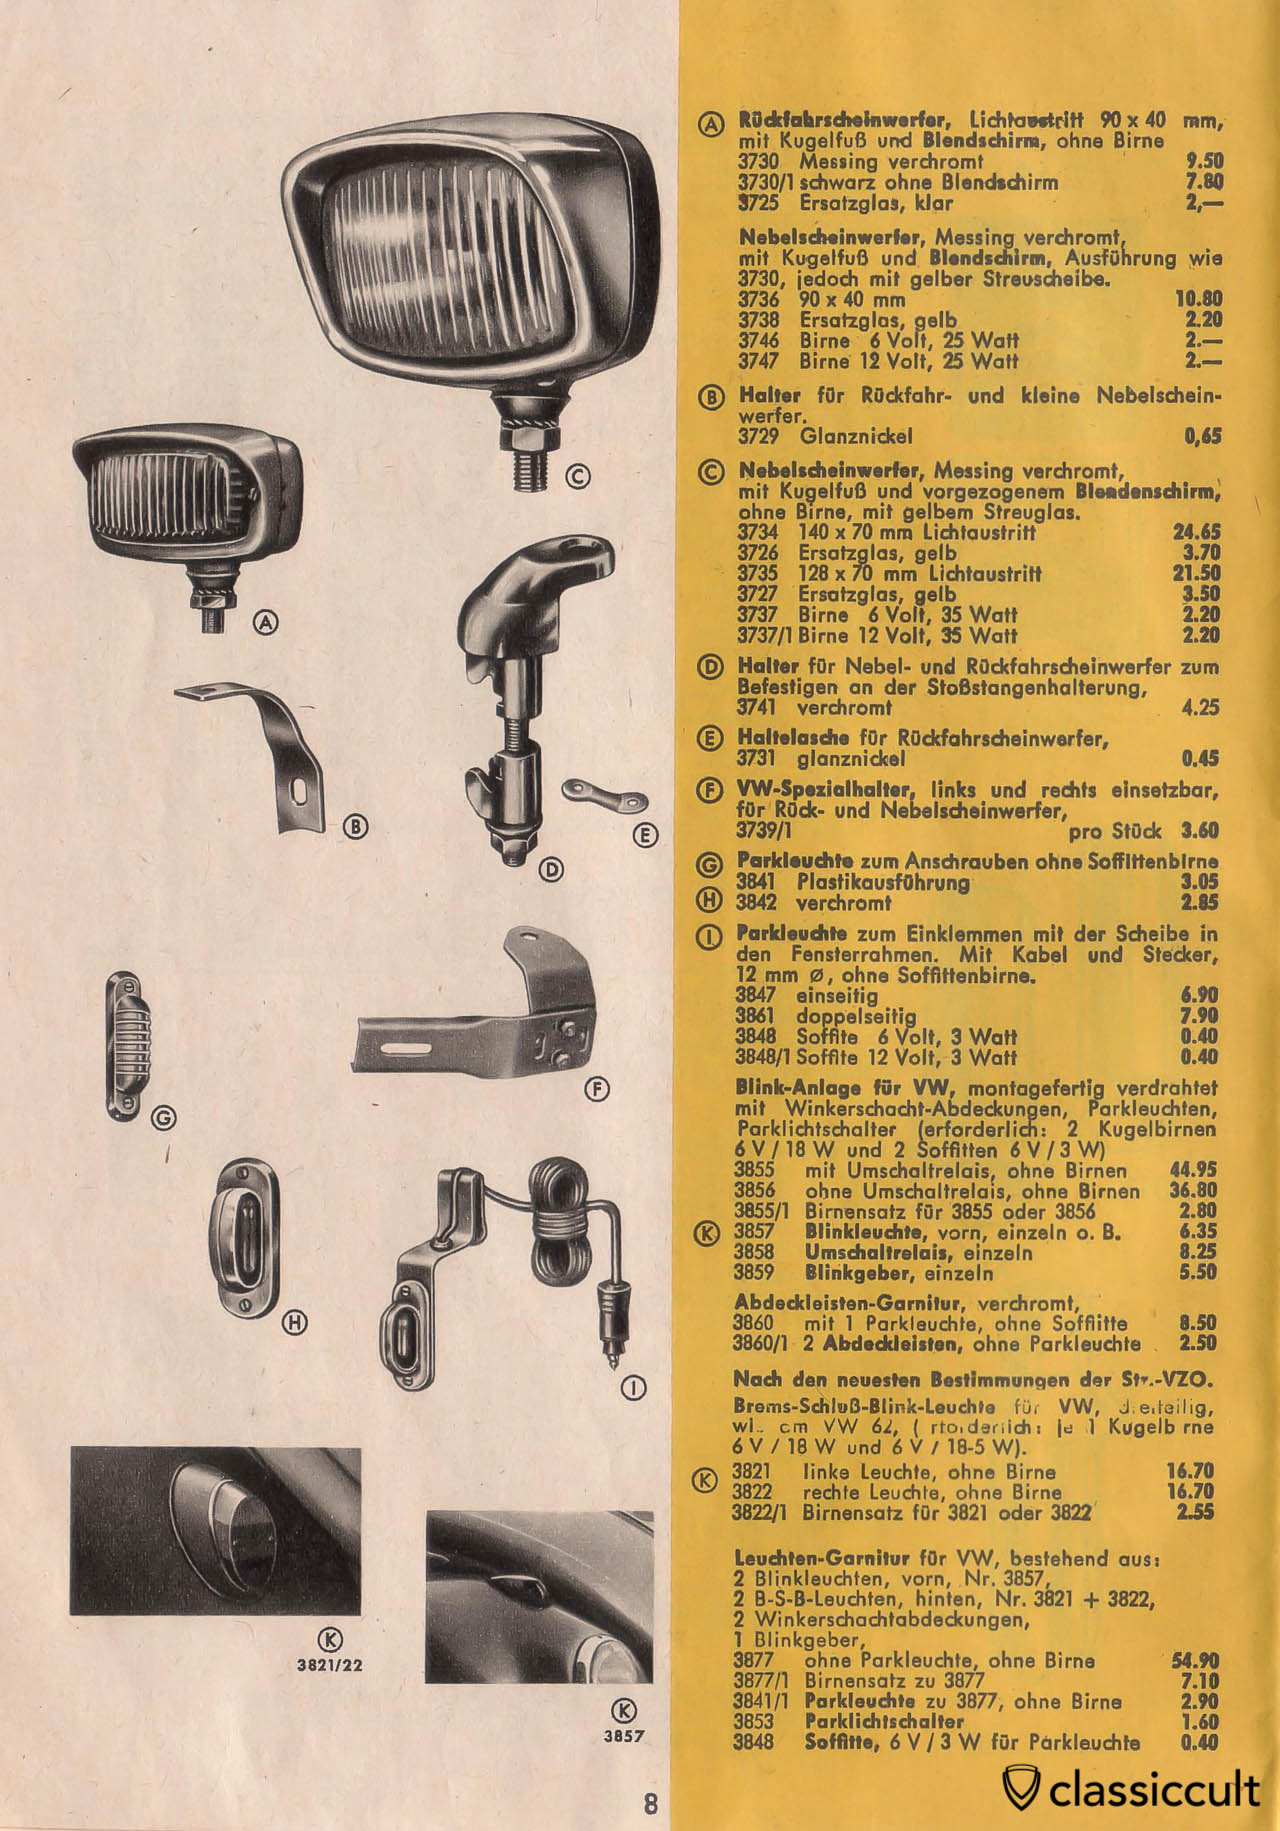 Vintage VW Beetle Accessories Catalog 1957-1965 | classiccult